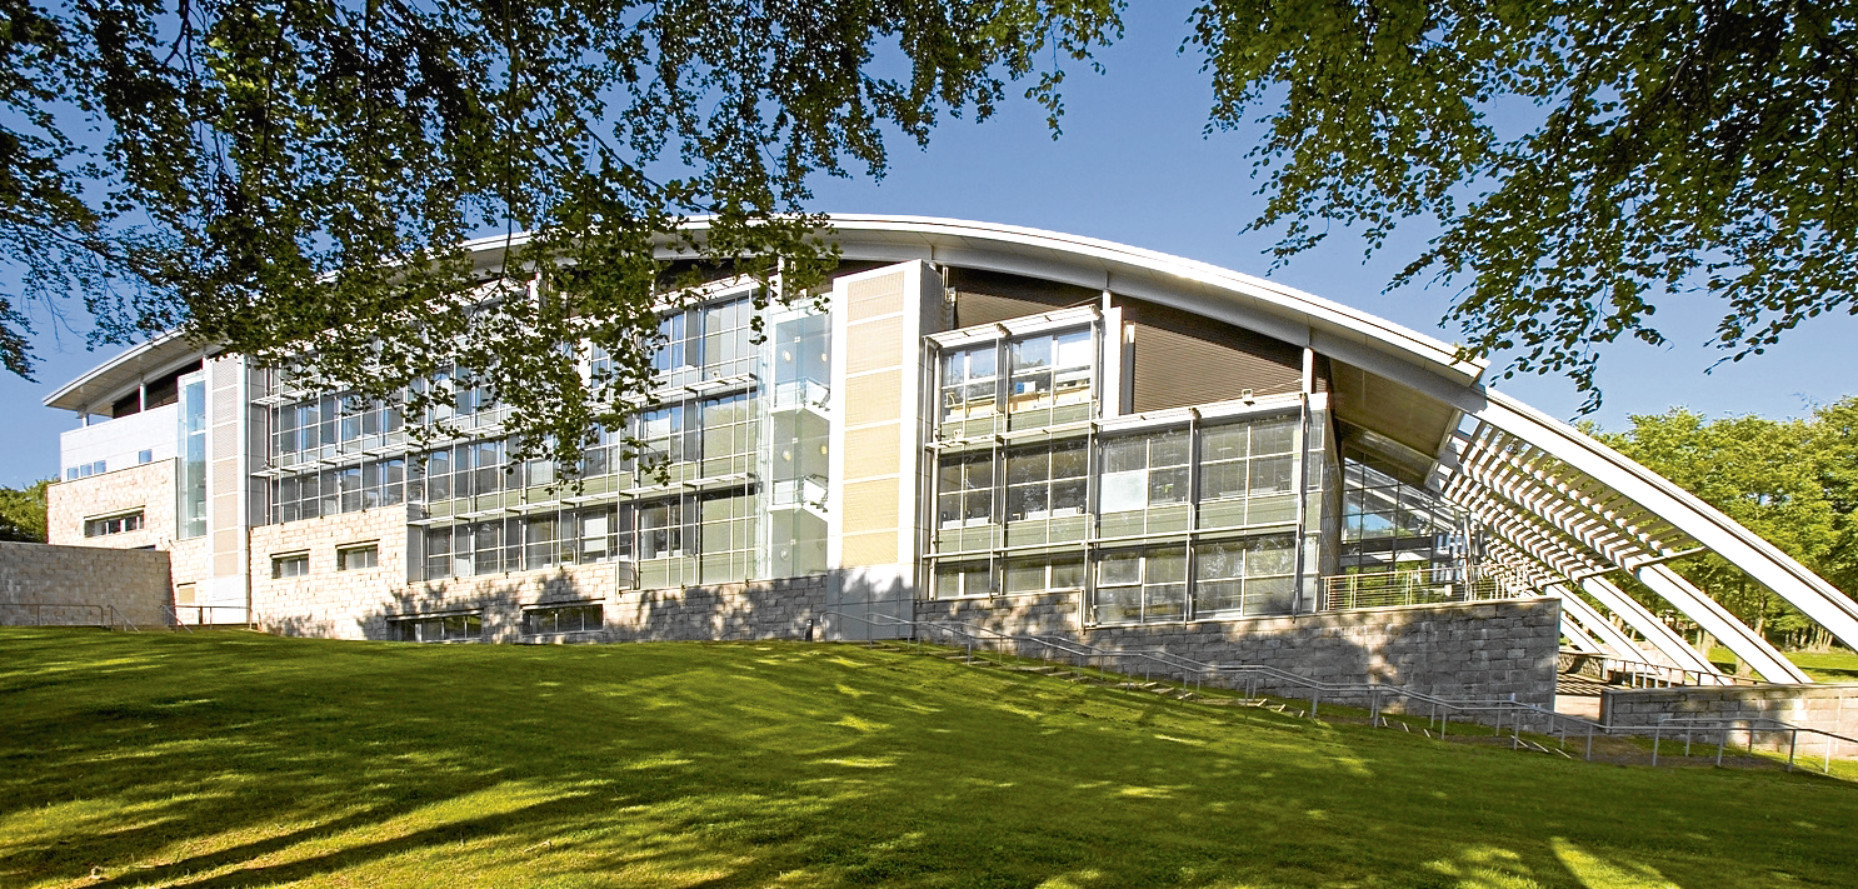 RGU Faculty of Health and Social Care picture submitted 22/03/2016